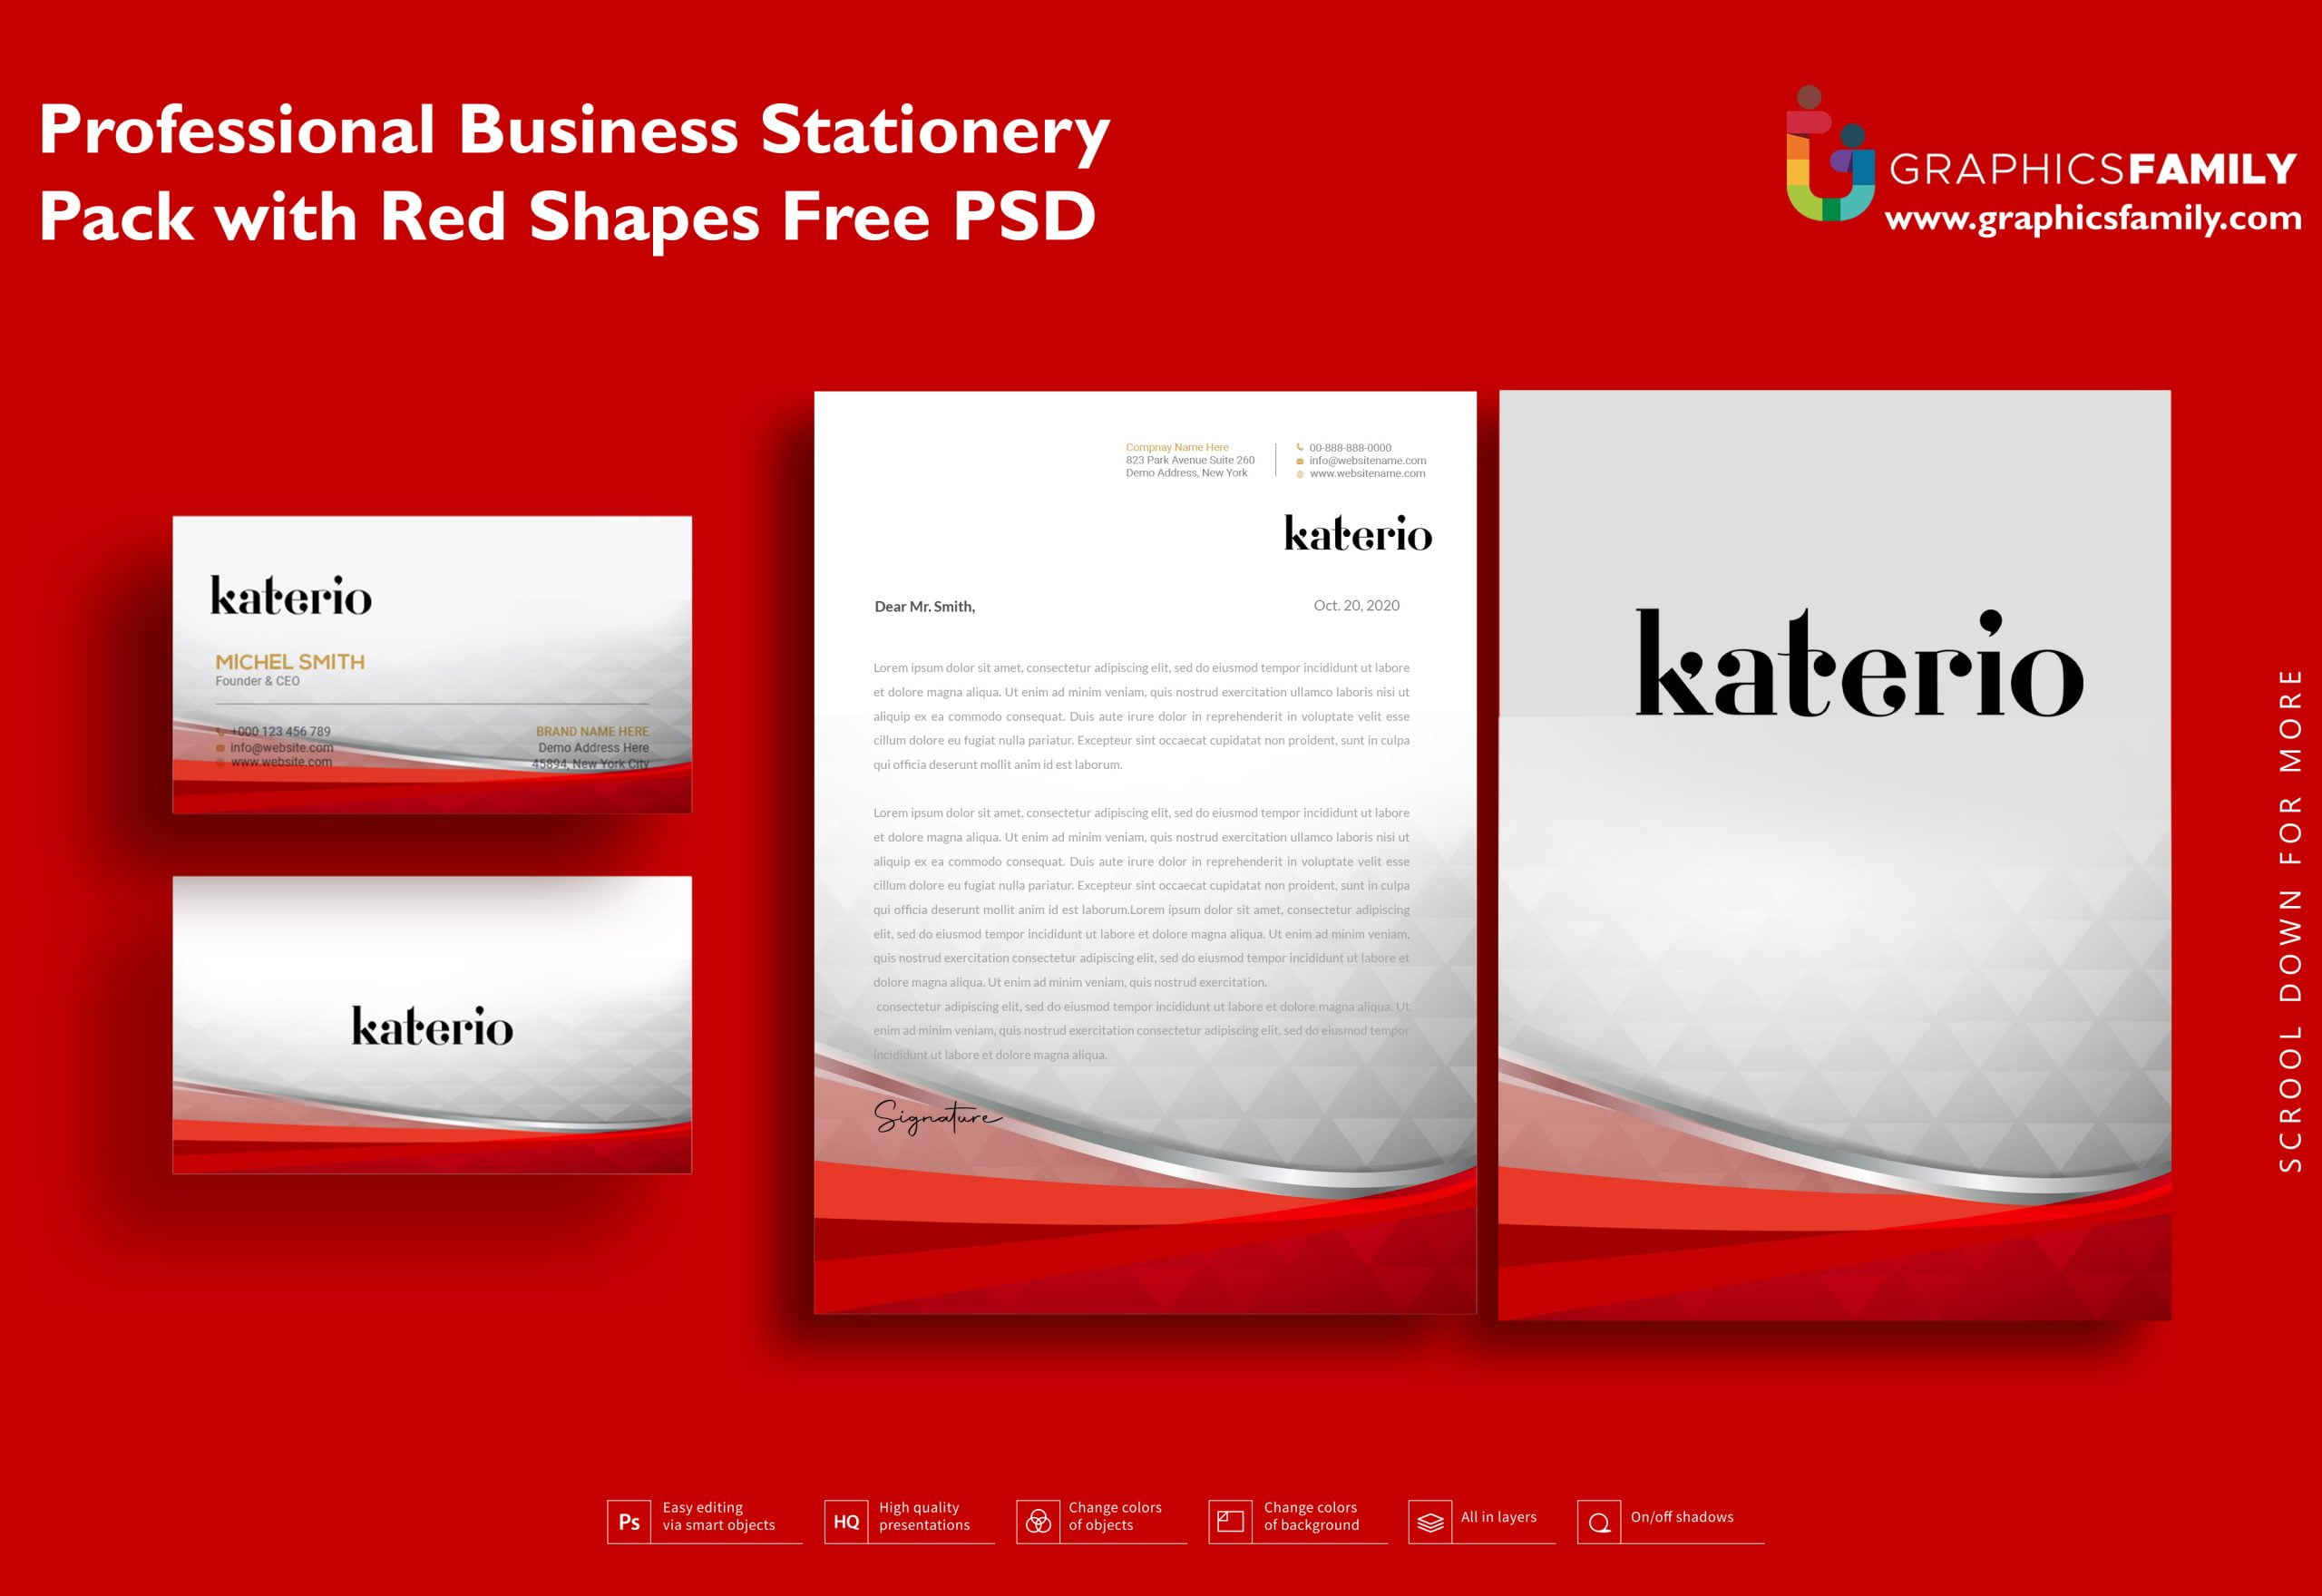 Professional Business Stationery Pack with Red Shapes Free Psd Download